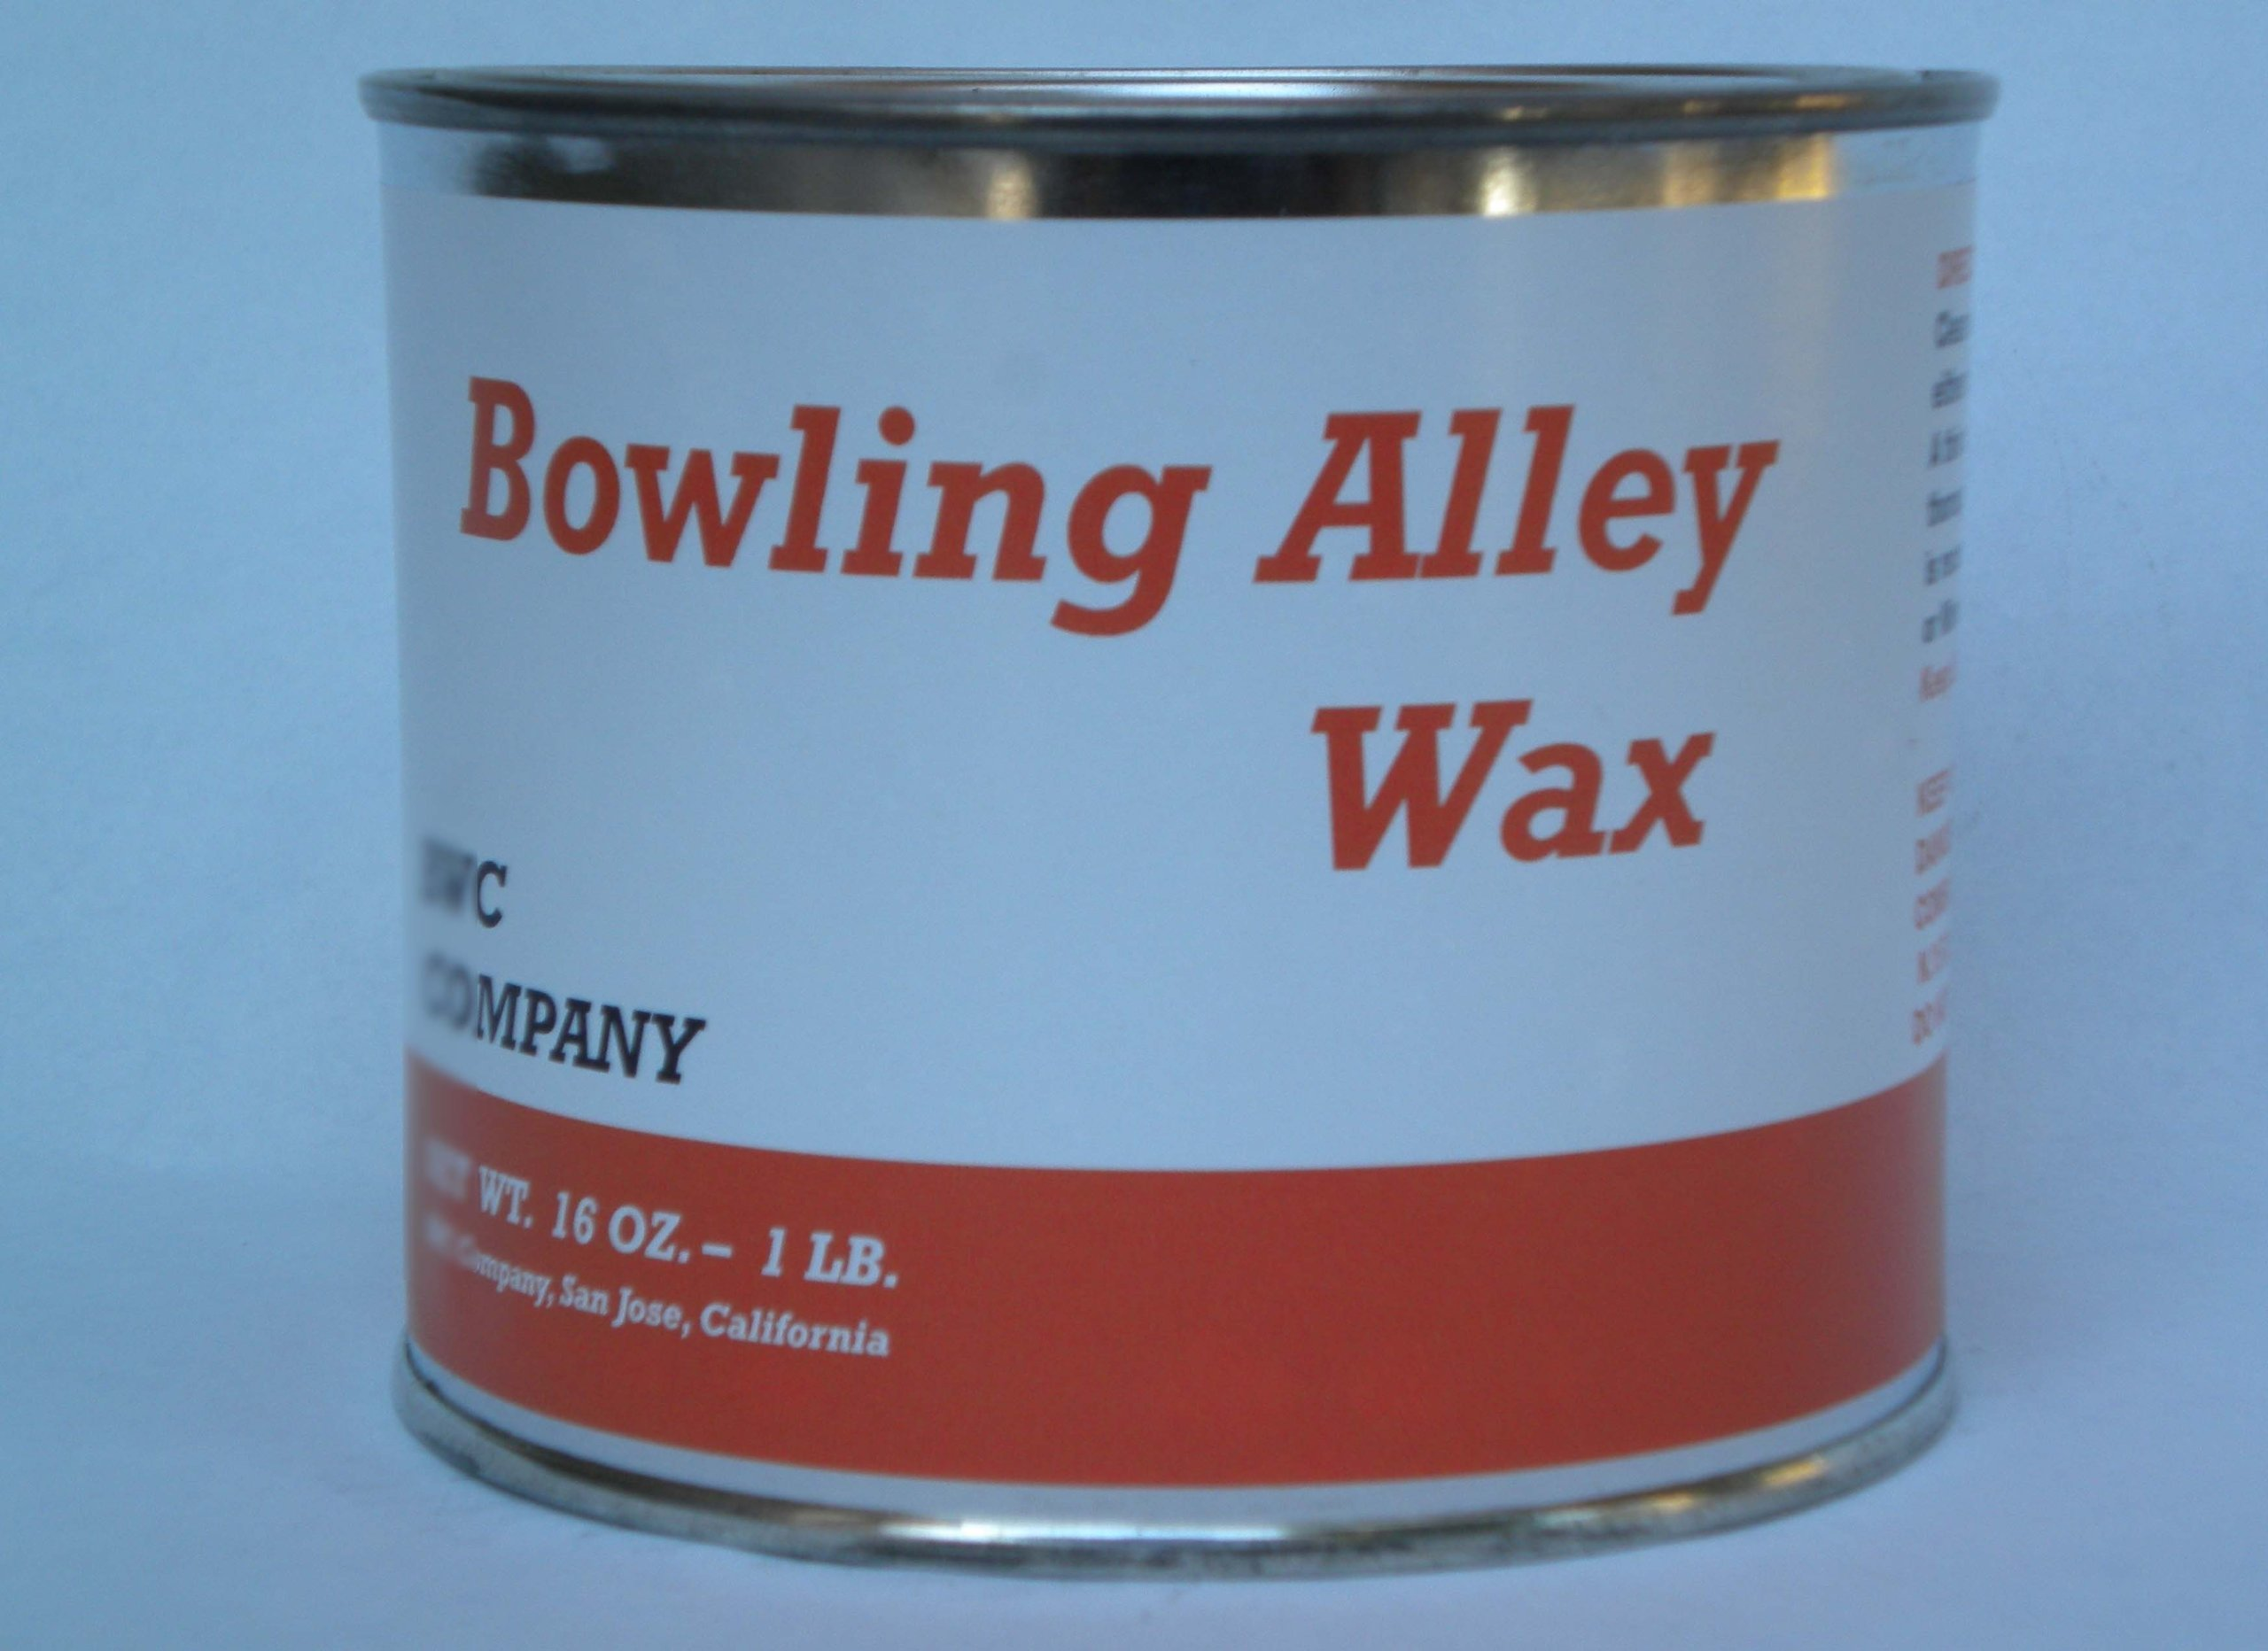 Bowling Alley Wax, Clear Paste Wax, 16 oz. Can by Bowling Alley Wax, White Diamond, Clear Paste Wax